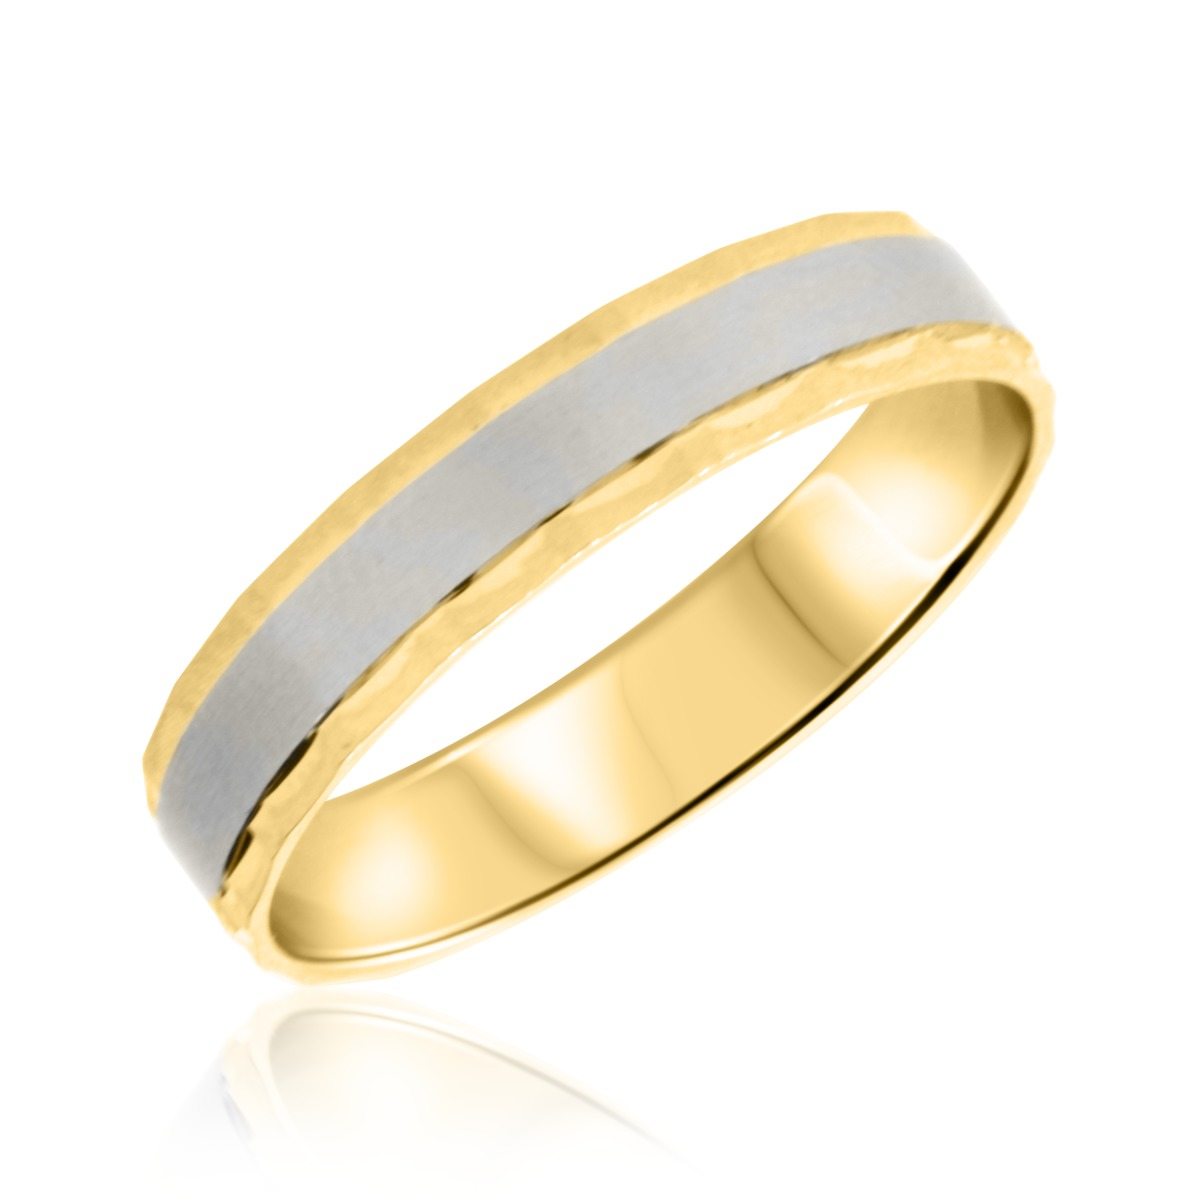 No DiamondsTraditional Mens Wedding Band 10K Yellow Gold My Trio Rings